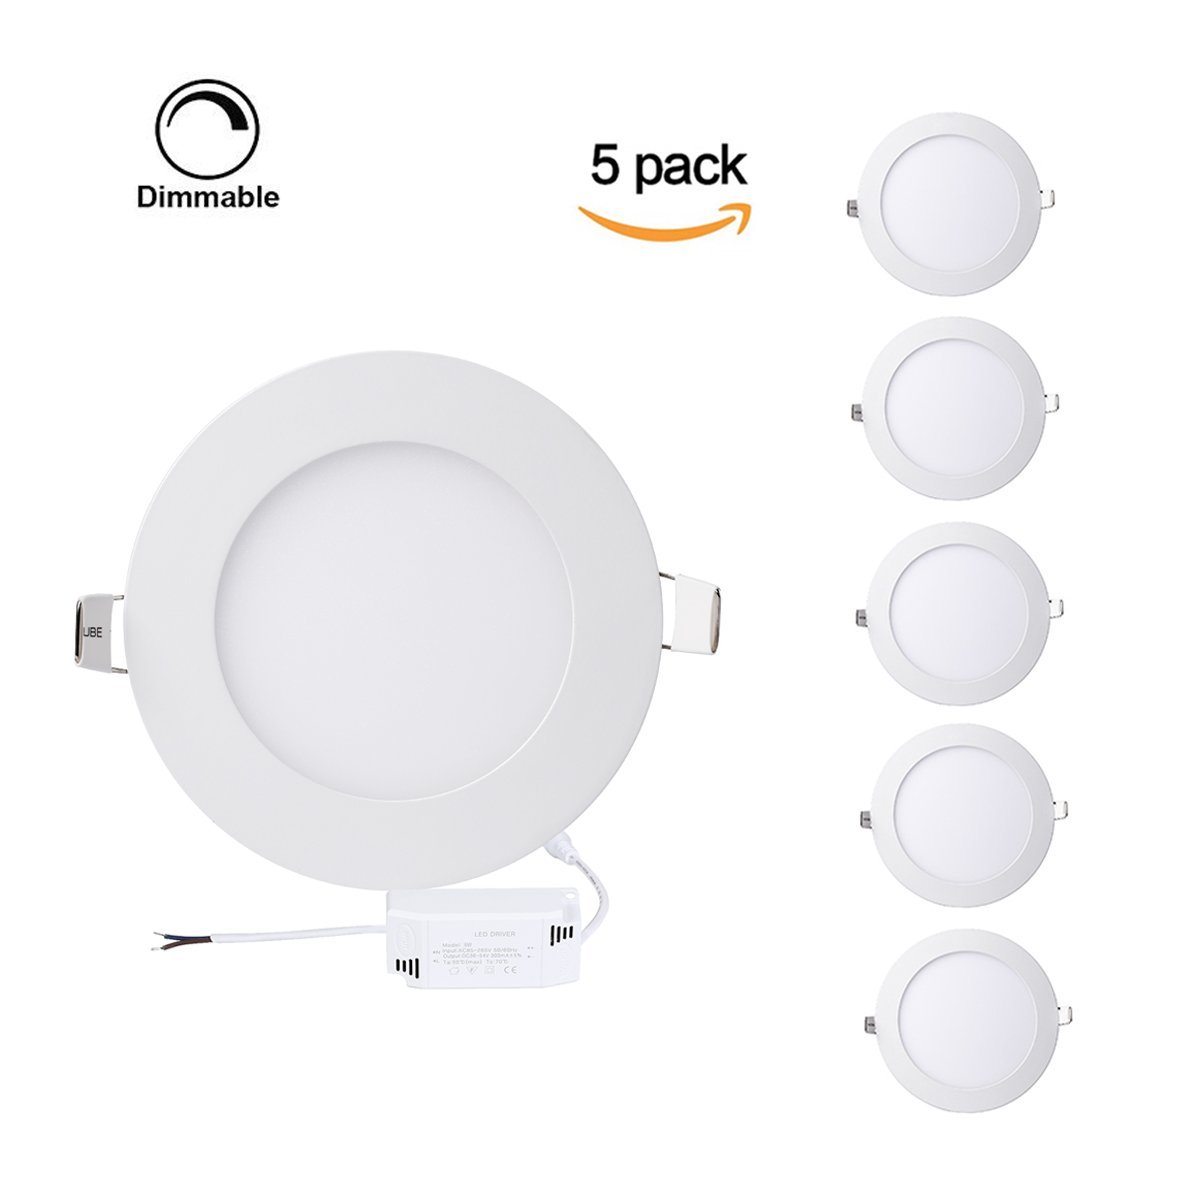 ProGreen Pack of 5 Units 15W Flat LED Panel Light, Dimmable Round Ultrathin LED Recessed Downlight, 1200lm, Warm White 3000K, Cut Hole 7.1 Inch, Panel Ceiling Lighting with 110V LED Driver